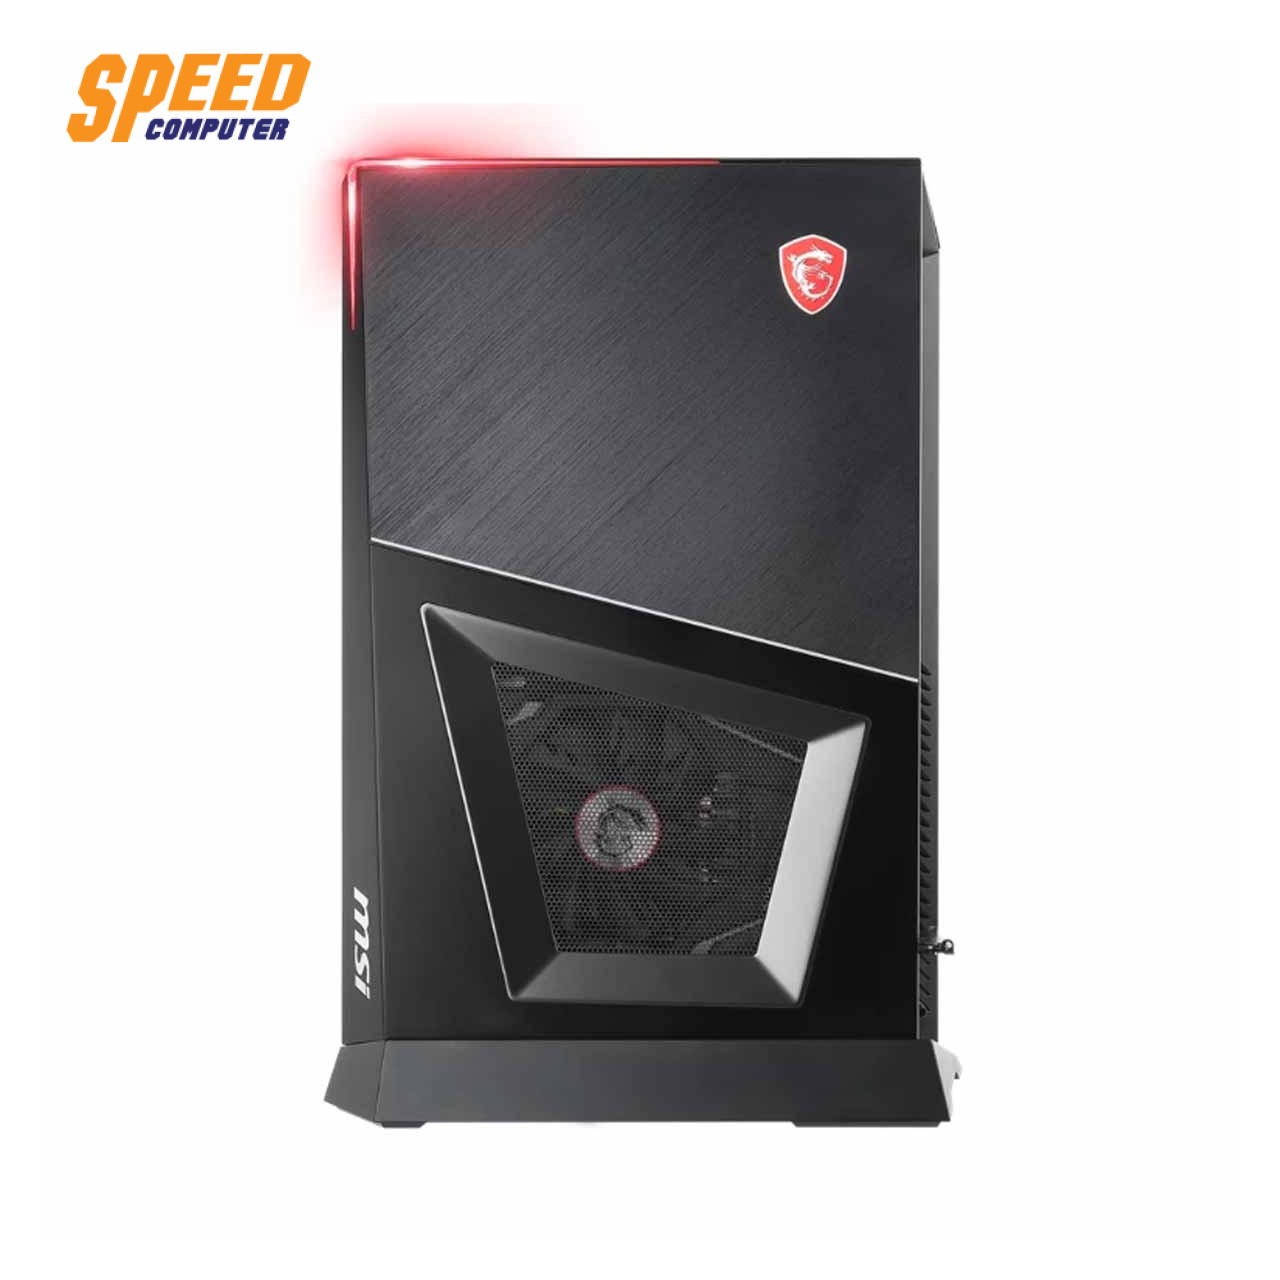 MSI TRIDENT 3 -8RB-280TH